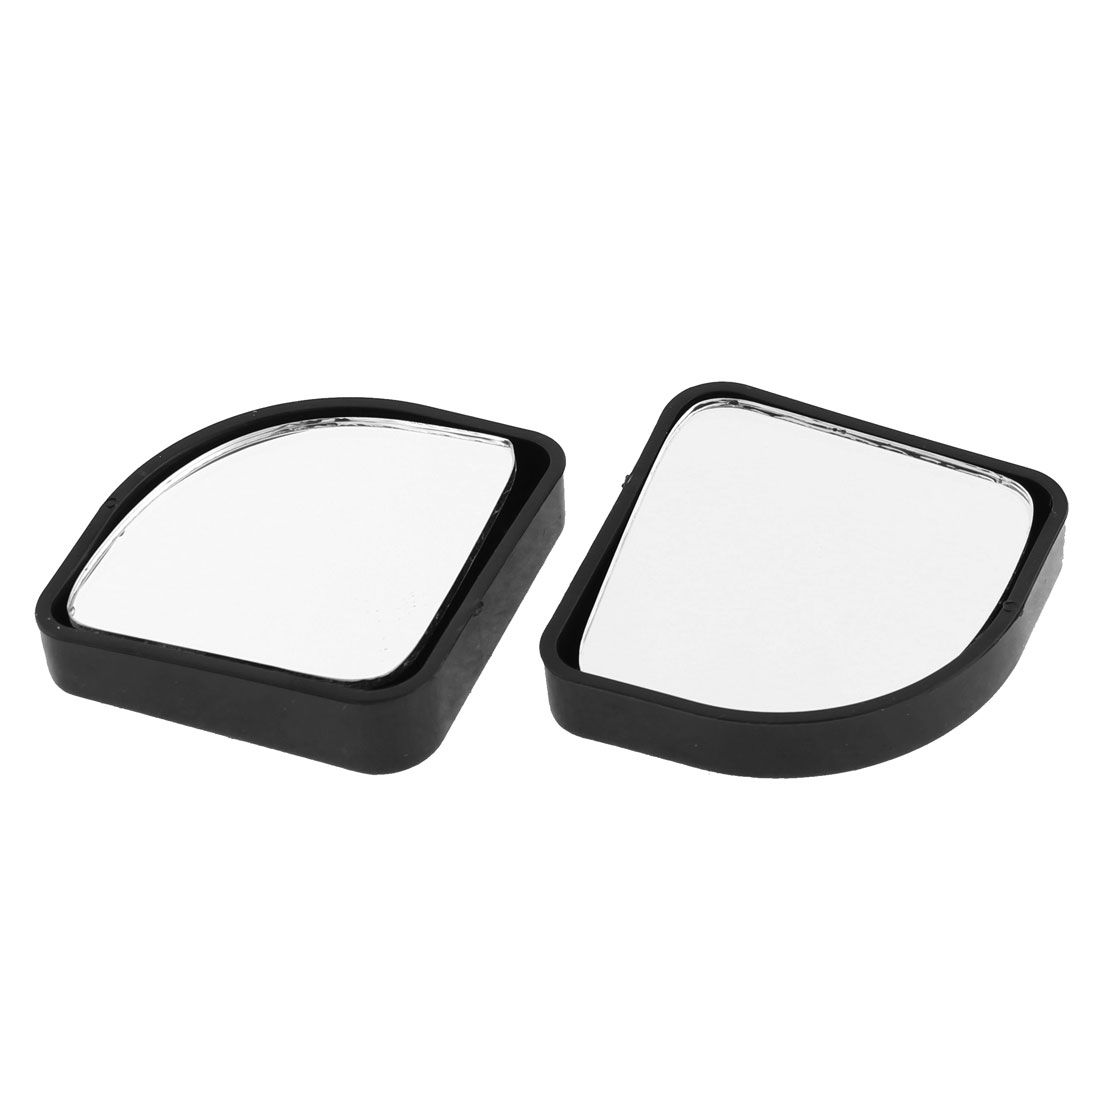 2 Pcs Self Adhesive Blind Spot Side Monitor Flat Rearview Mirrors for Automotive